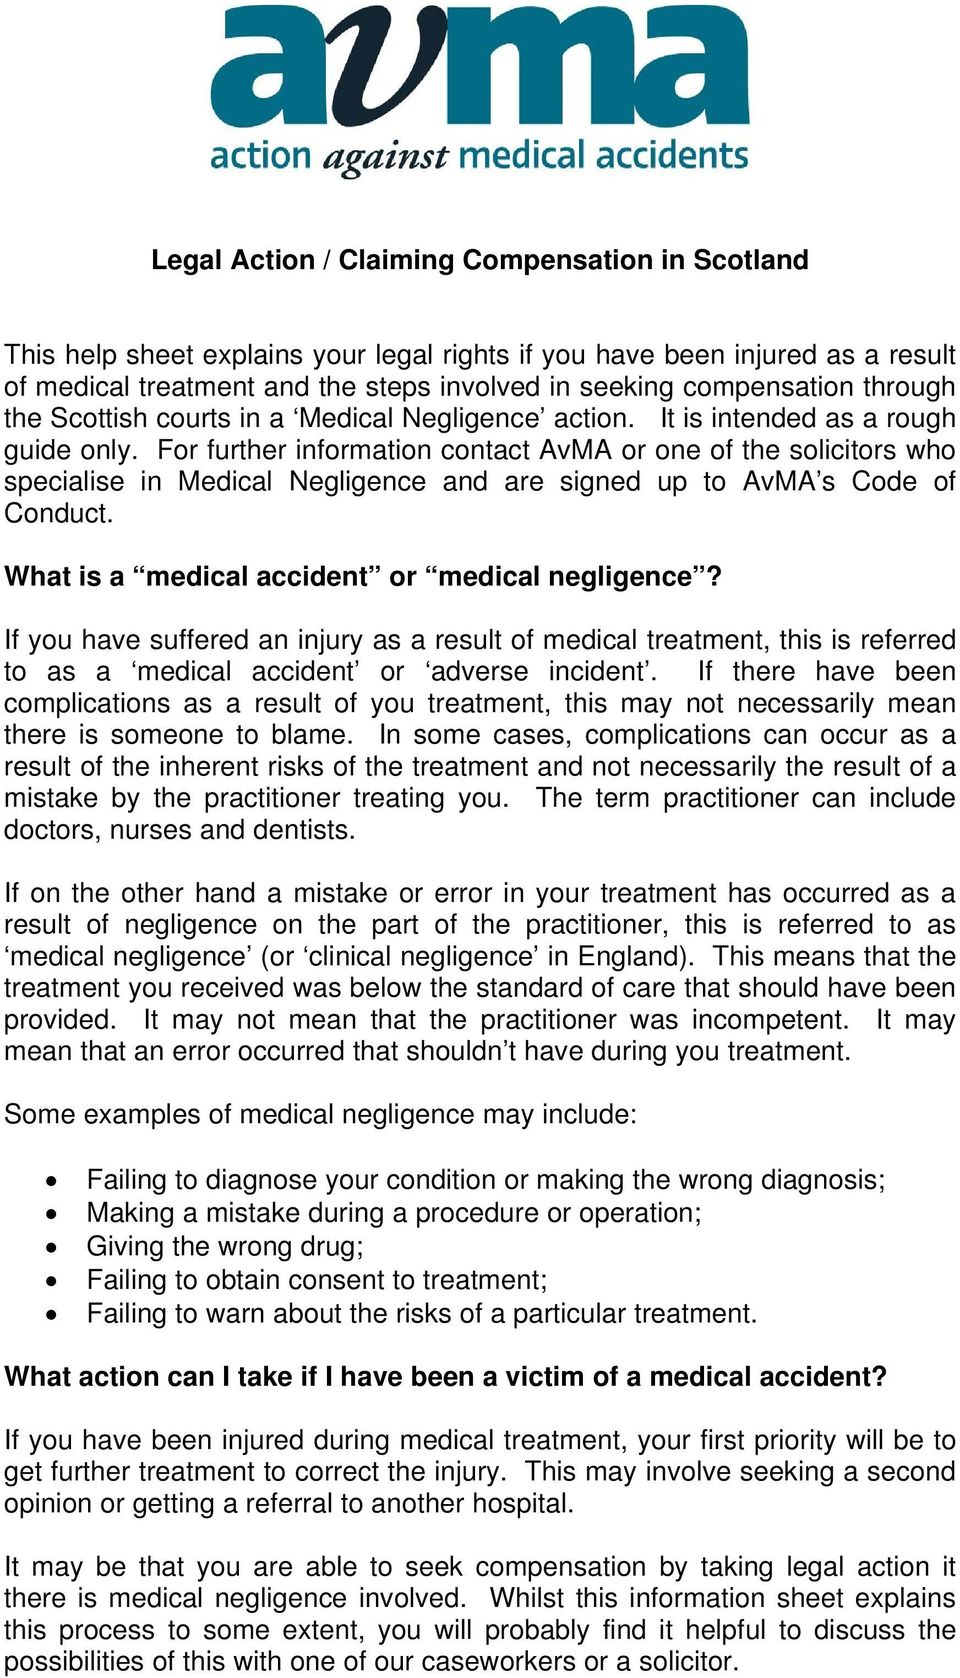 For further information contact AvMA or one of the solicitors who specialise in Medical Negligence and are signed up to AvMA s Code of Conduct. What is a medical accident or medical negligence?